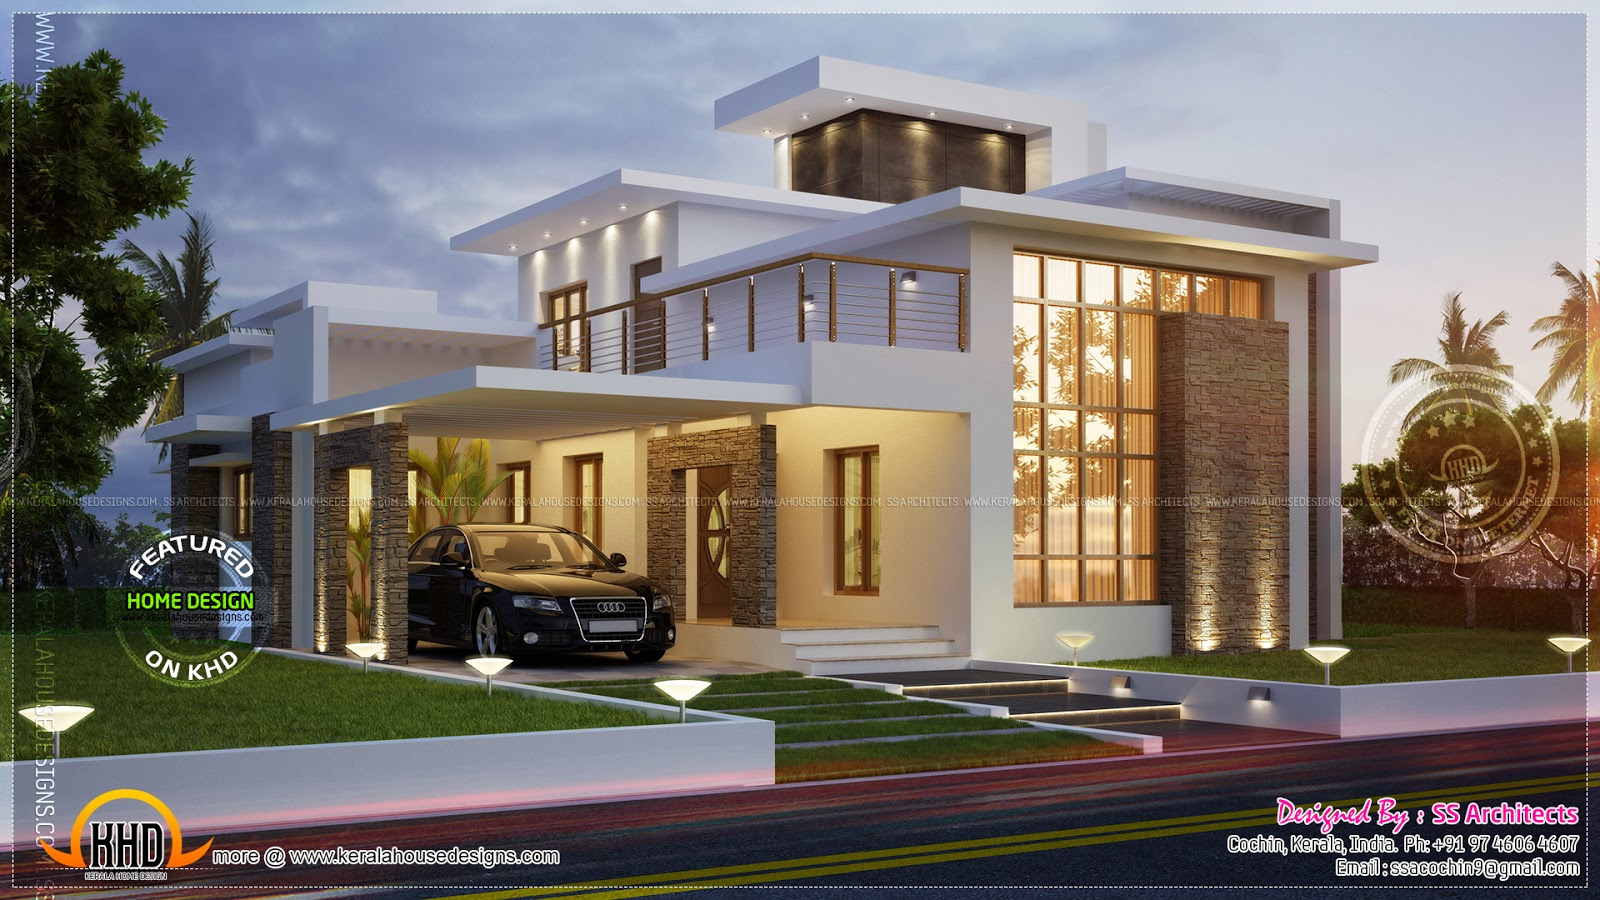 Awesome 3000 contemporary house kerala home for Home designs 3000 sq ft